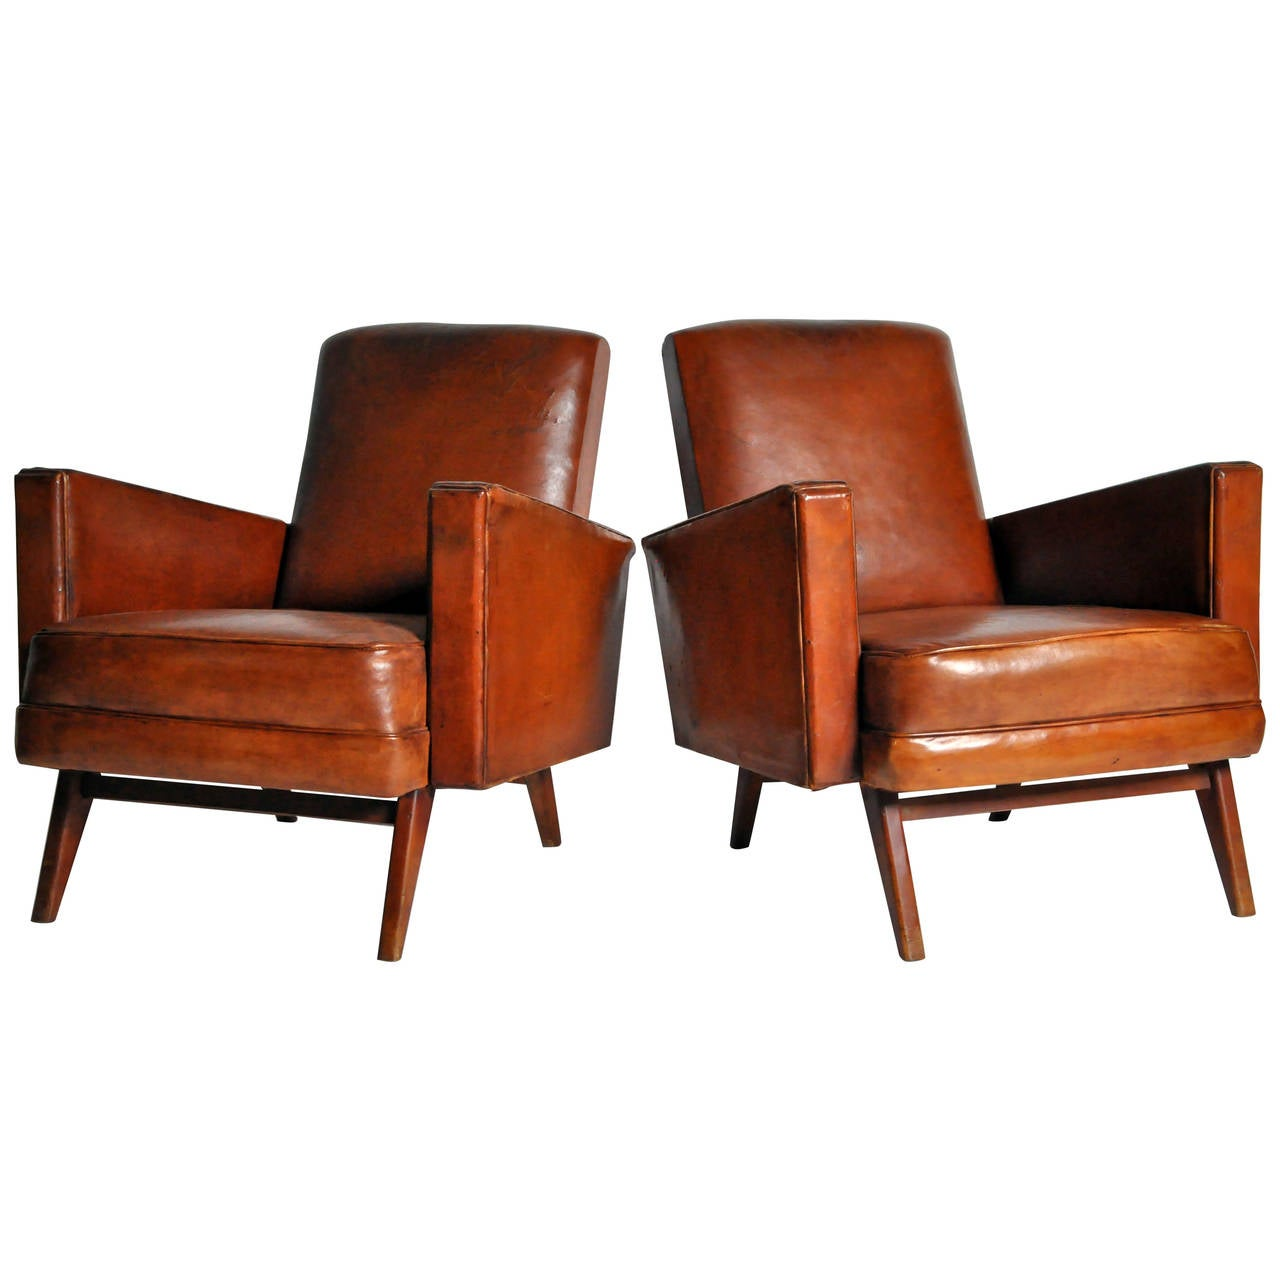 Mid Century Modern Armchairs: Pair Of Mid-Century Modern Square Armchairs At 1stdibs